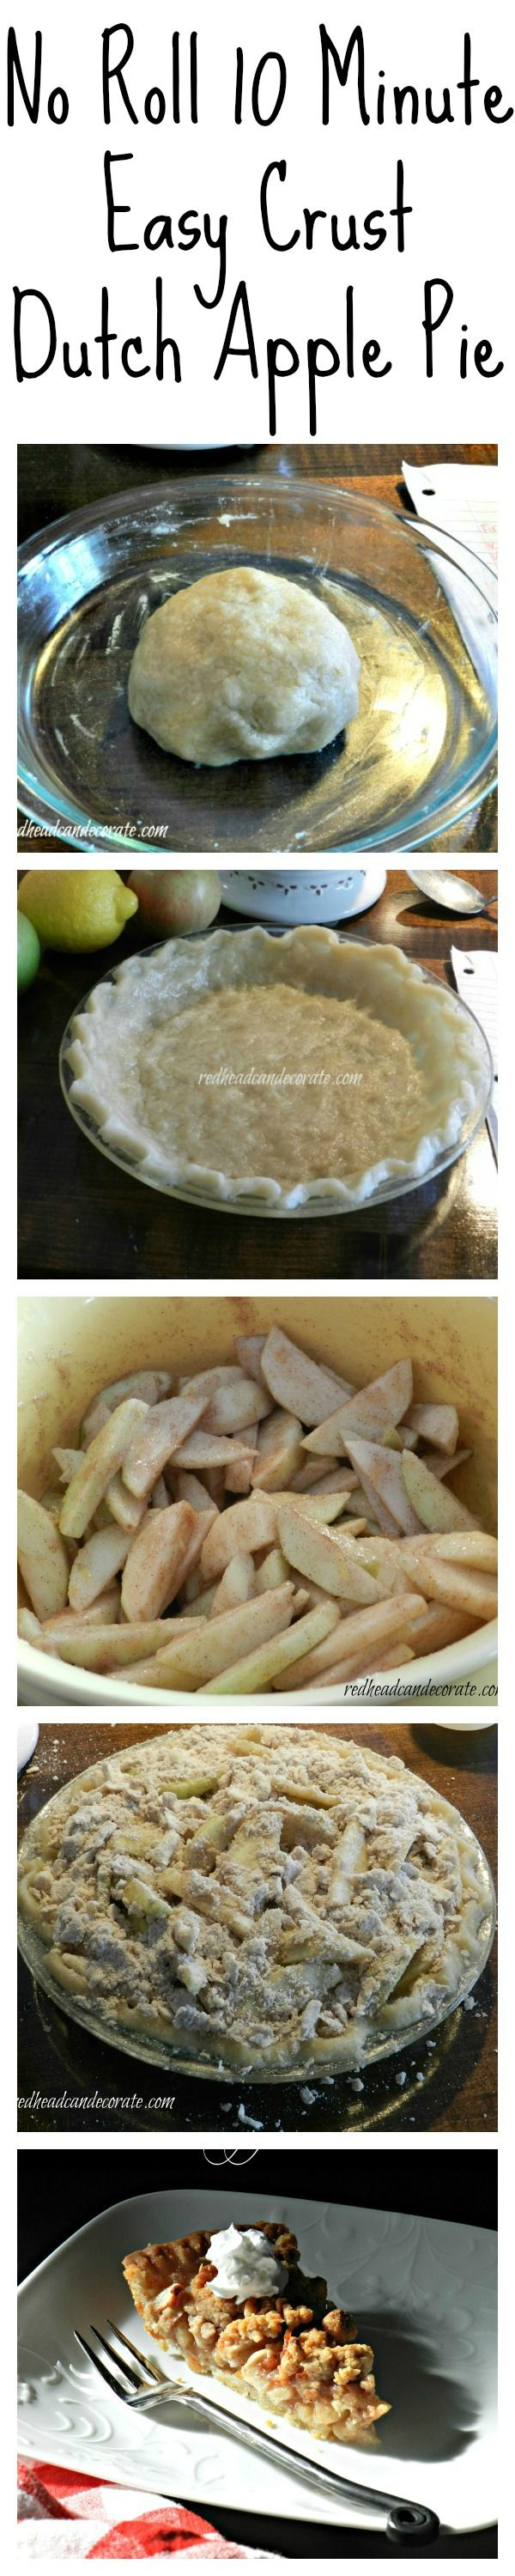 No Roll Pie Crust w/ Dutch Apple Pie Recipe. Crust also great for Pumpkin, and Pecan Pie redheadcandecorate.com